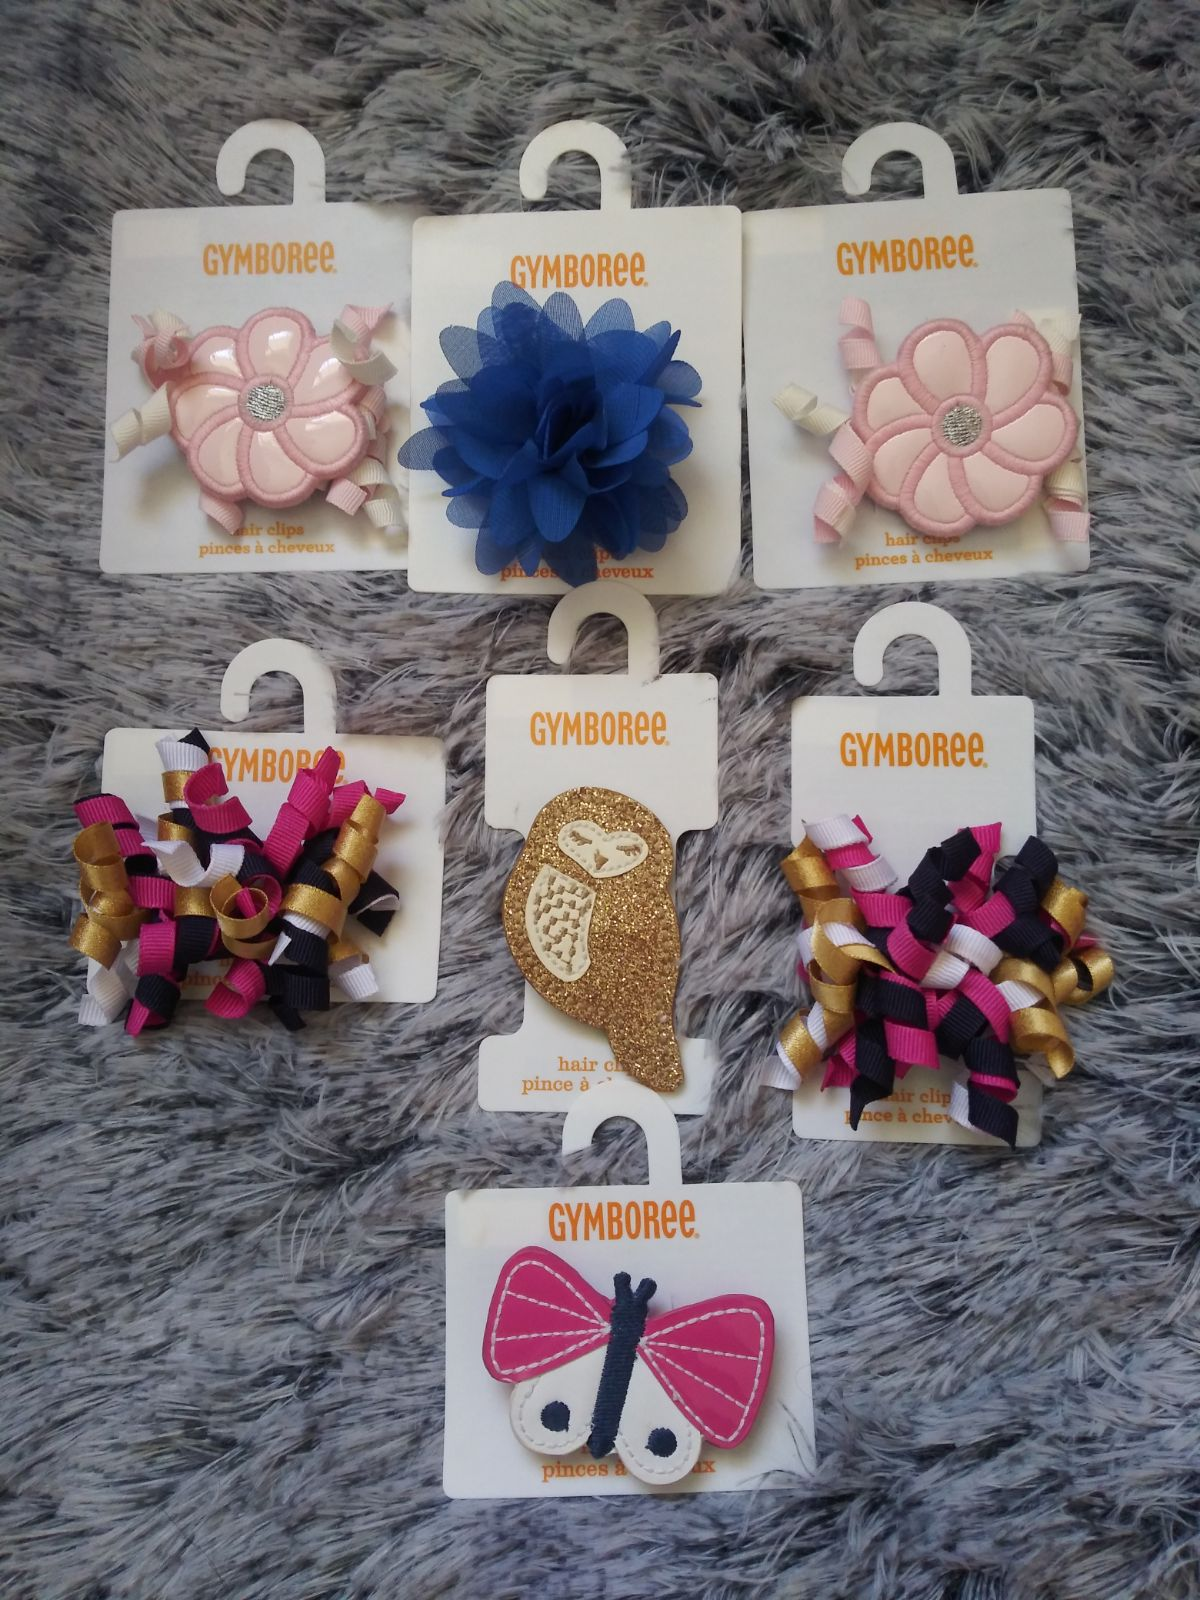 BNIP Gymboree Hair Accessories